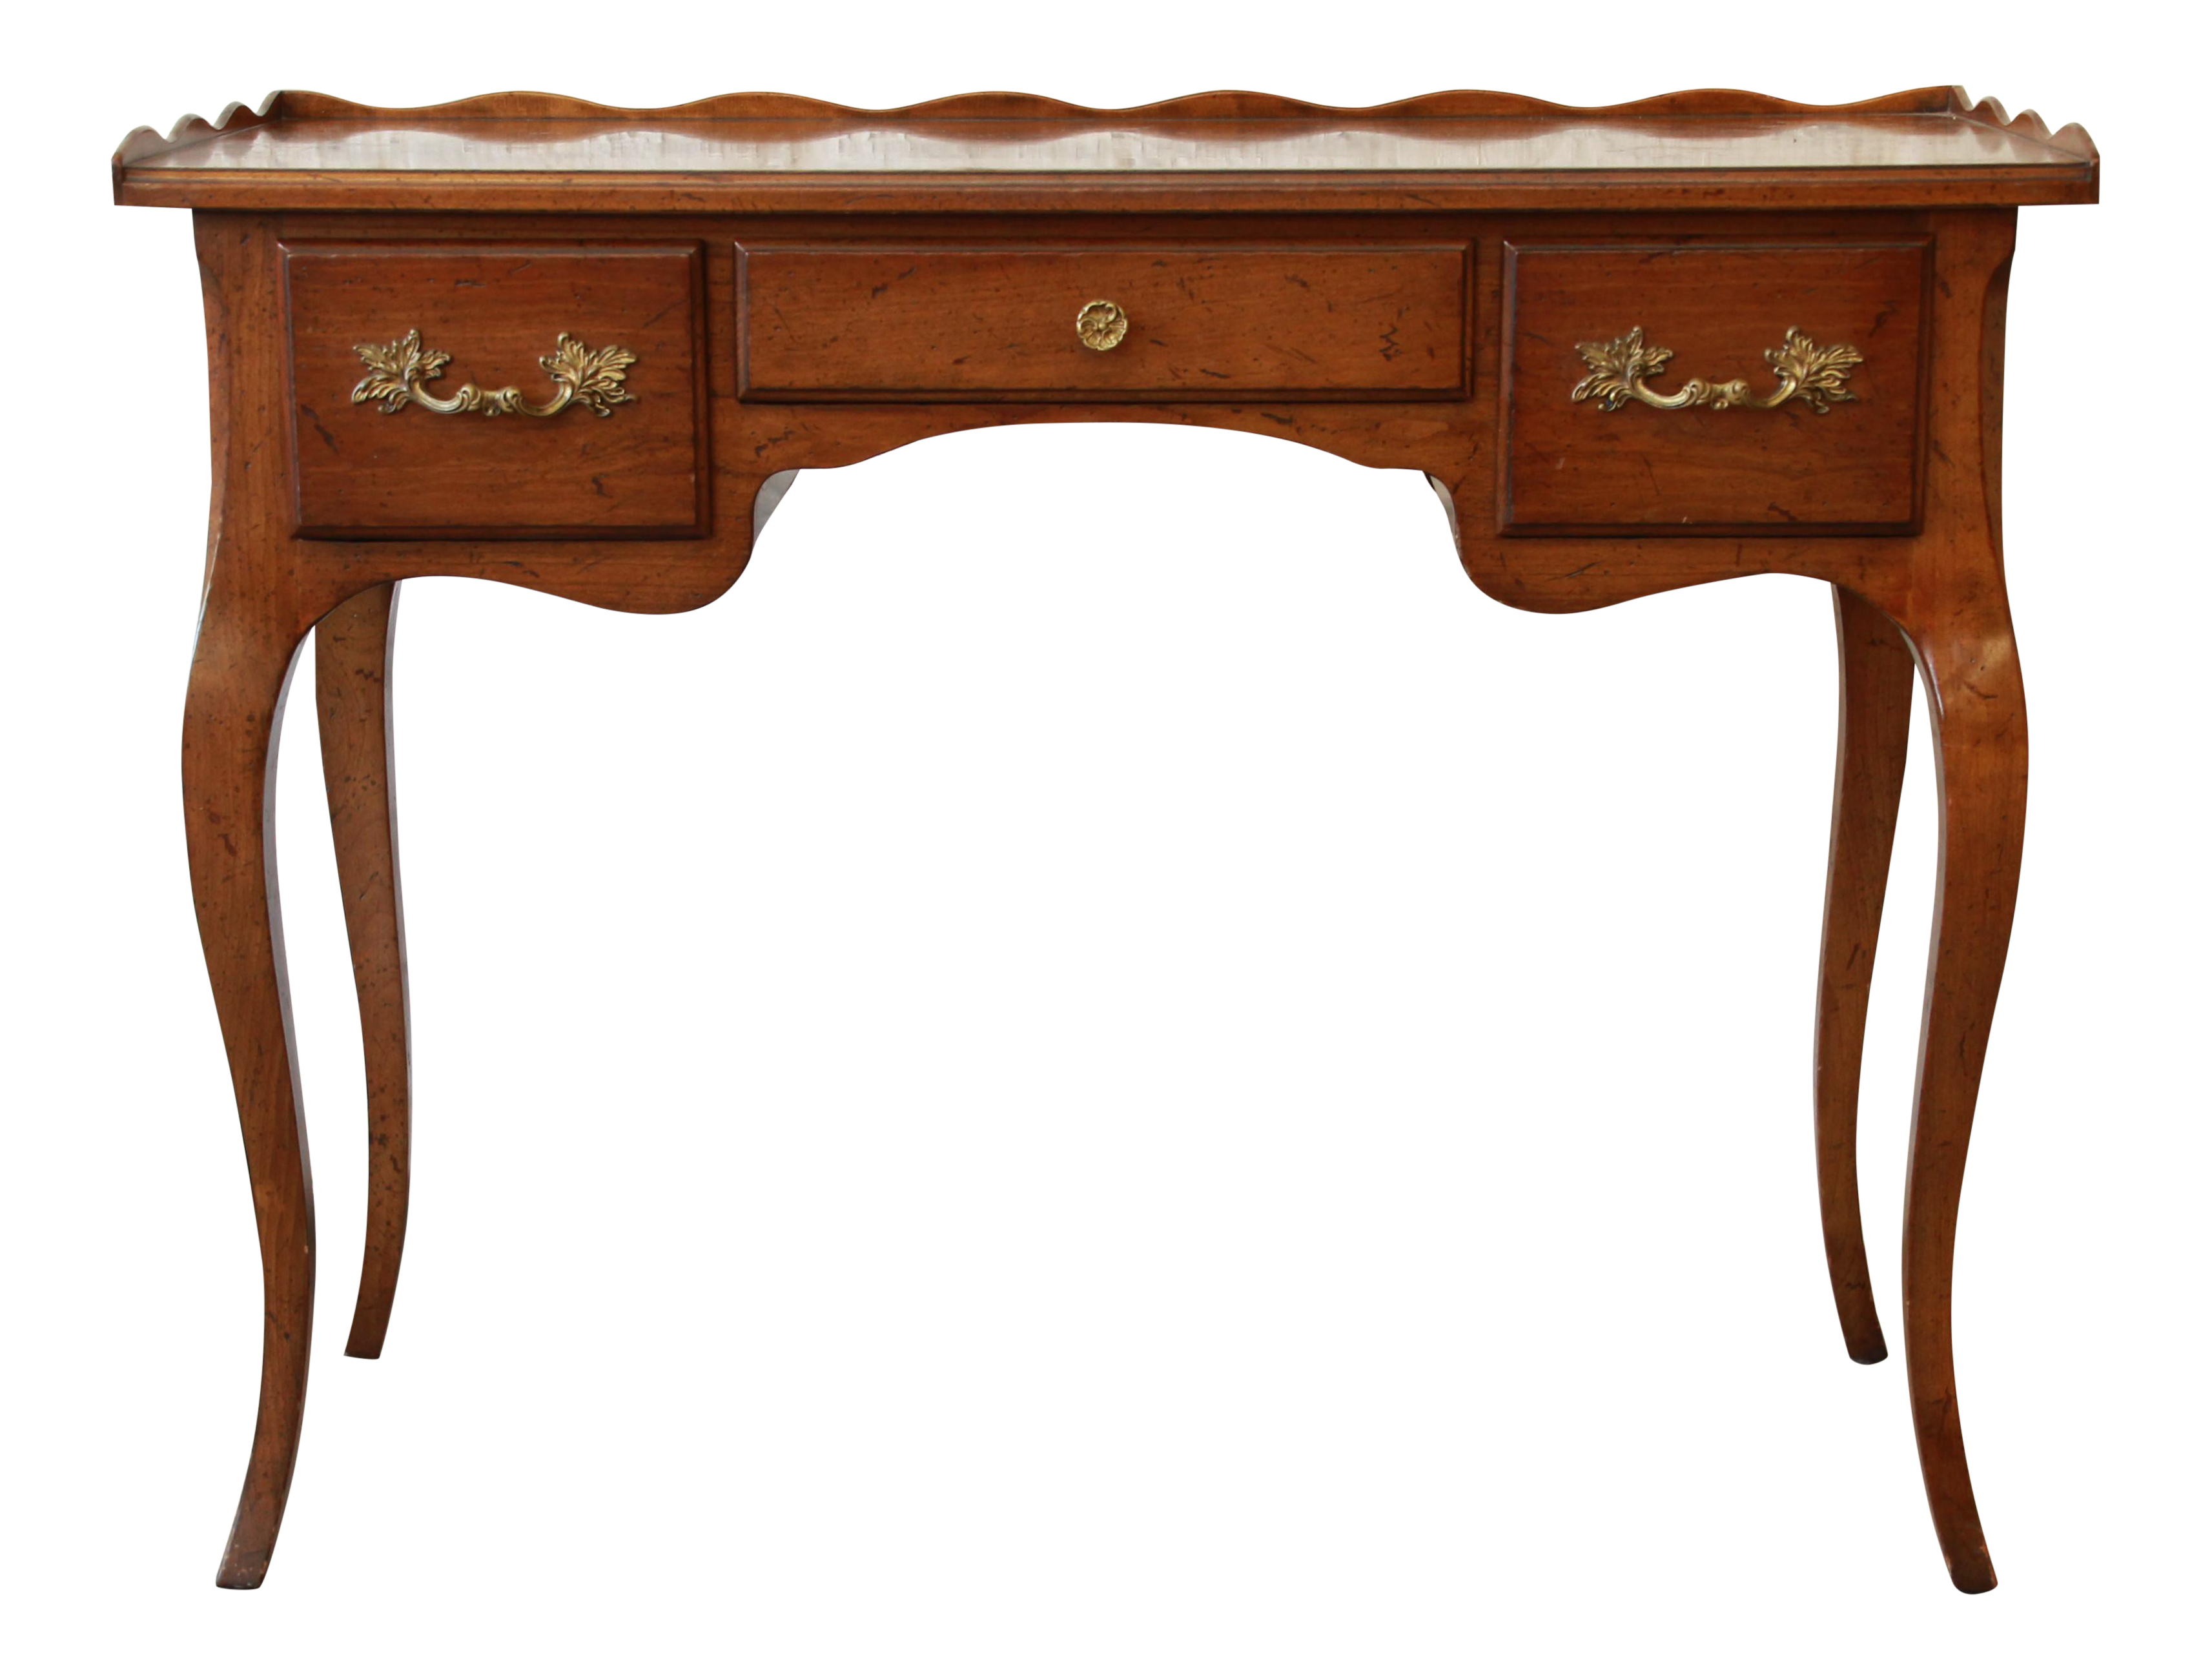 french ladies writing desk Ladies antique writing desk ($8593 - $6,29900): 30 of 12969 items - shop ladies antique writing desk from all your favorite stores & find huge savings up to 80% off ladies antique writing desk, including great deals like butler ladies writing desk ($89900.